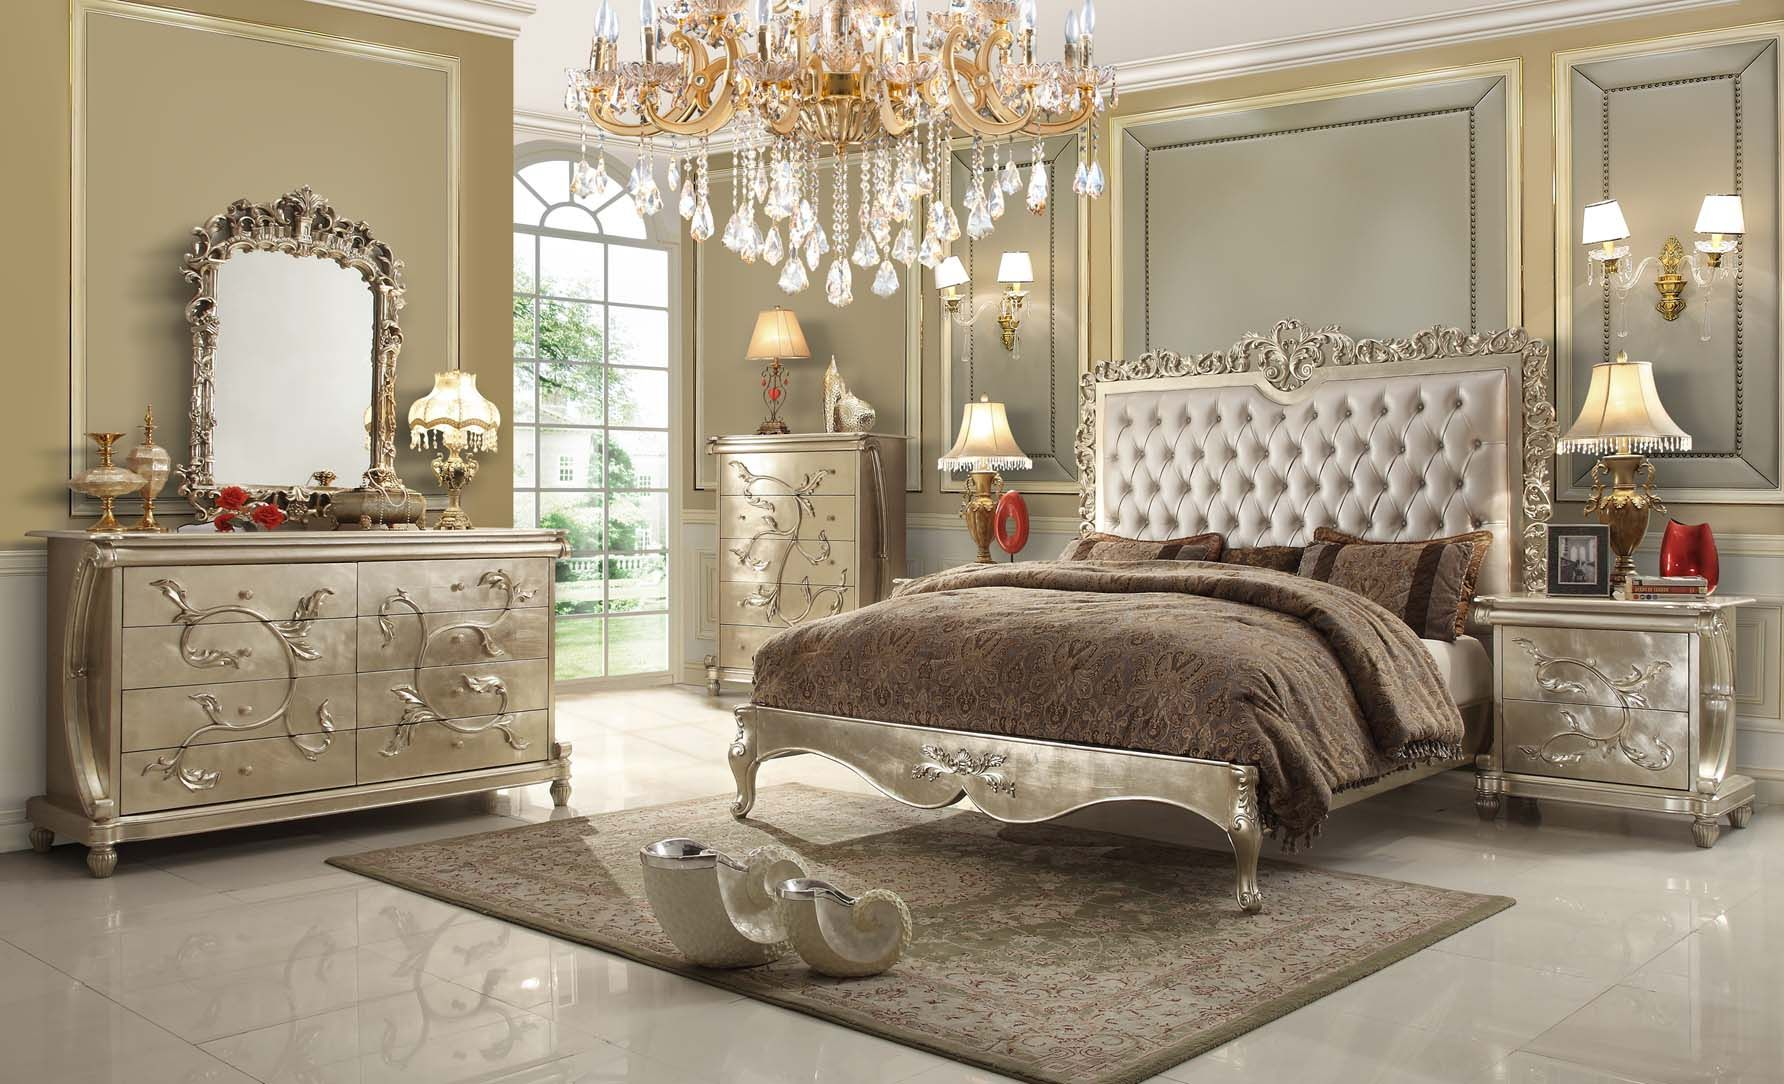 This Pearl Finish Victorian Style Bedroom Set From Homey Design Is